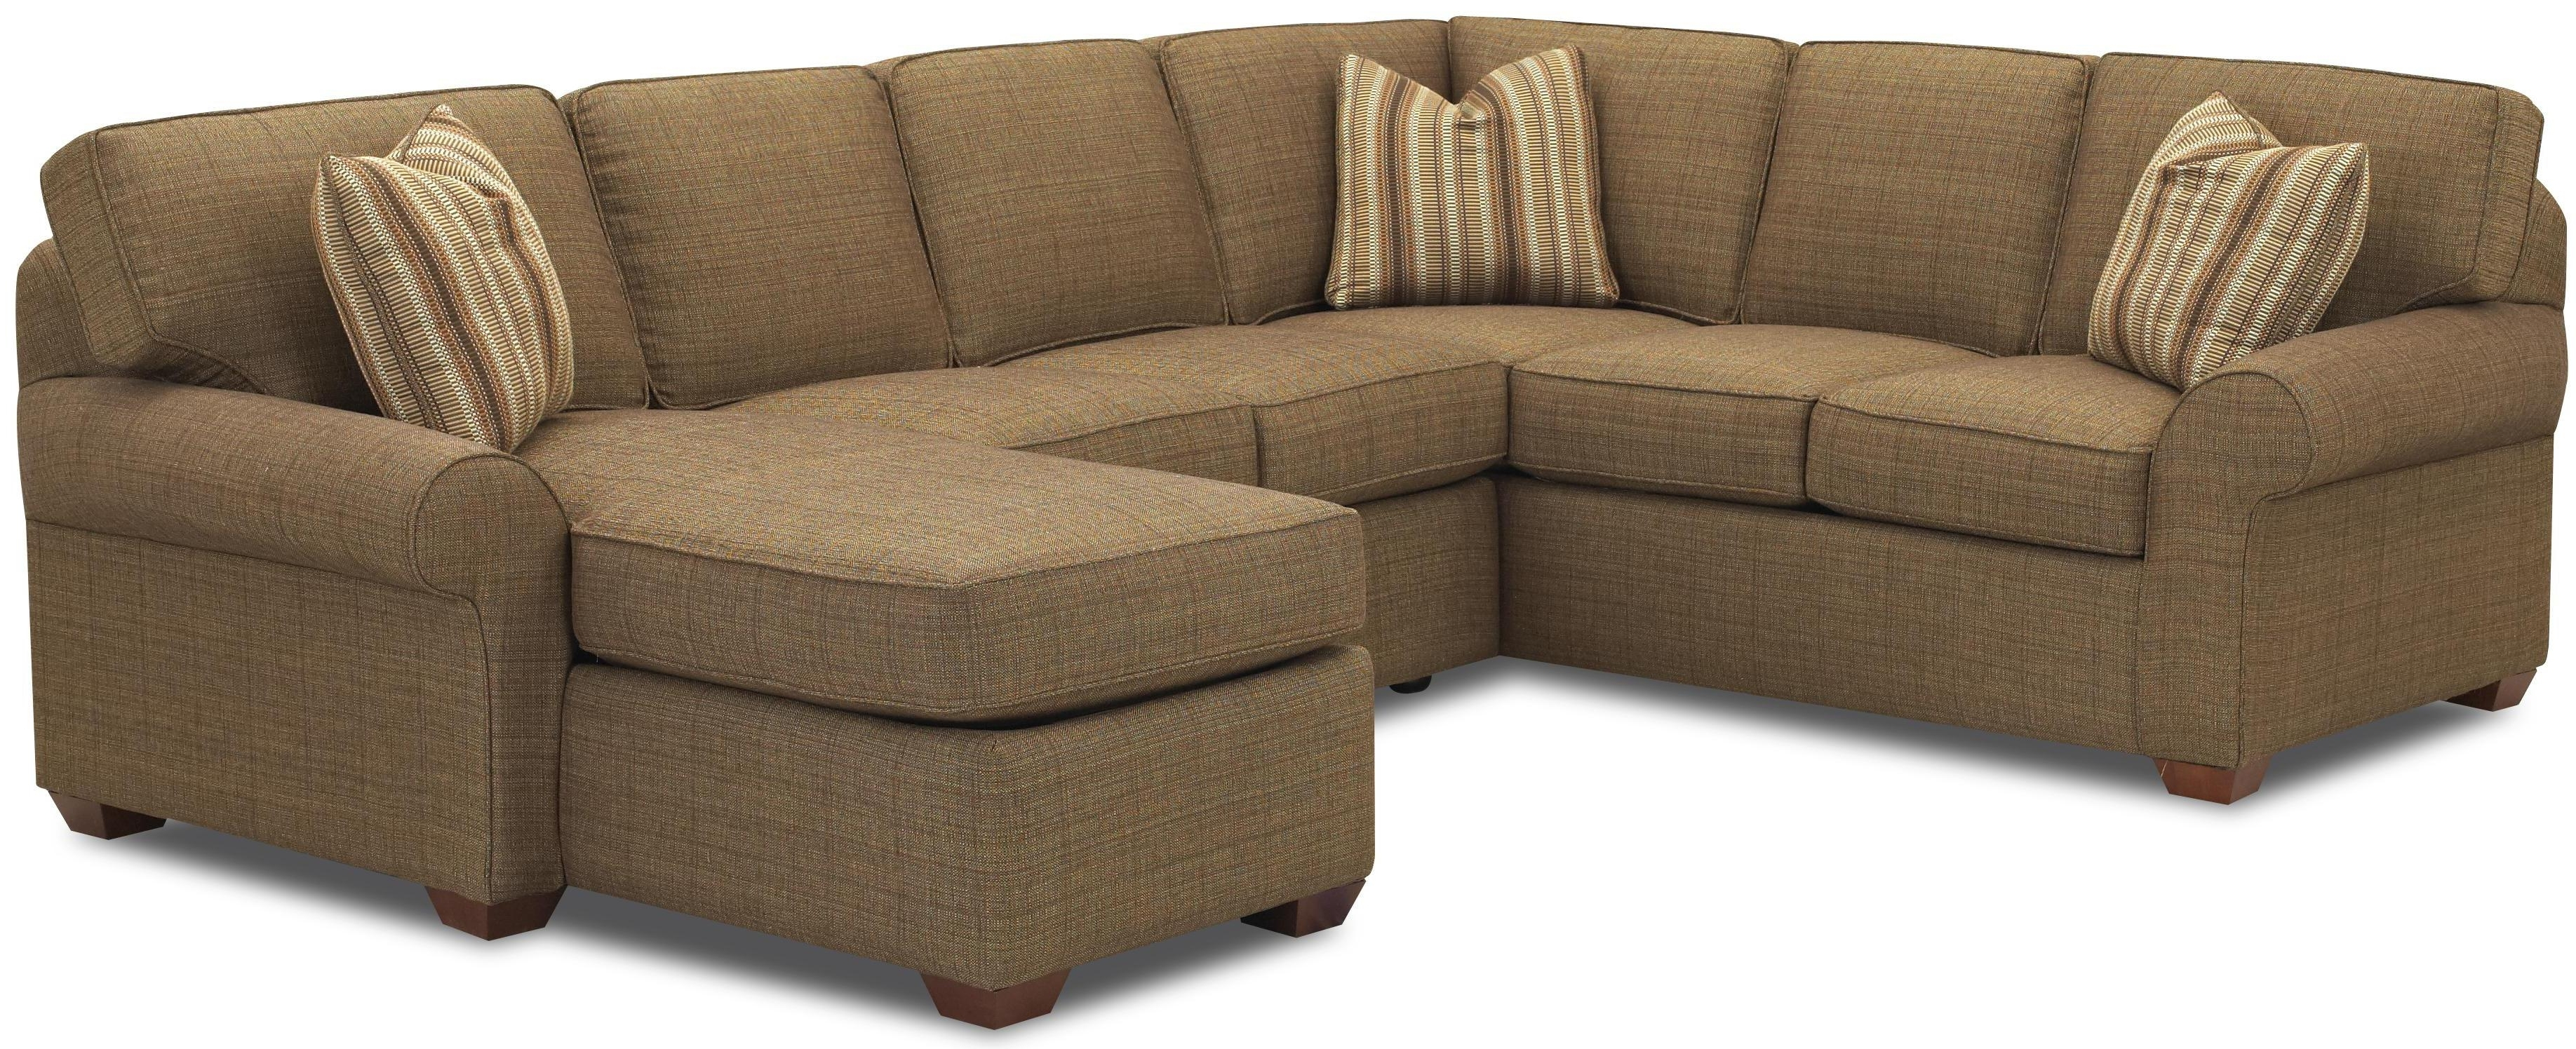 Sectional Sofa Group With Right Chaise Loungeklaussner (View 19 of 20)